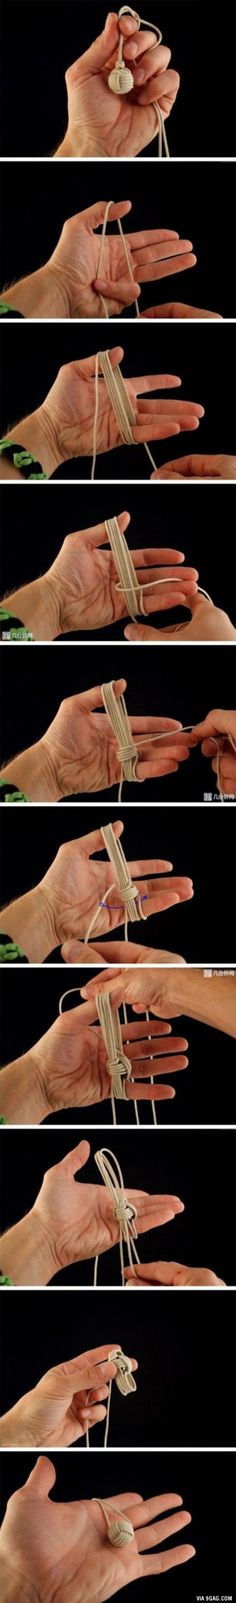 How To Make The Chinese Knot Ball